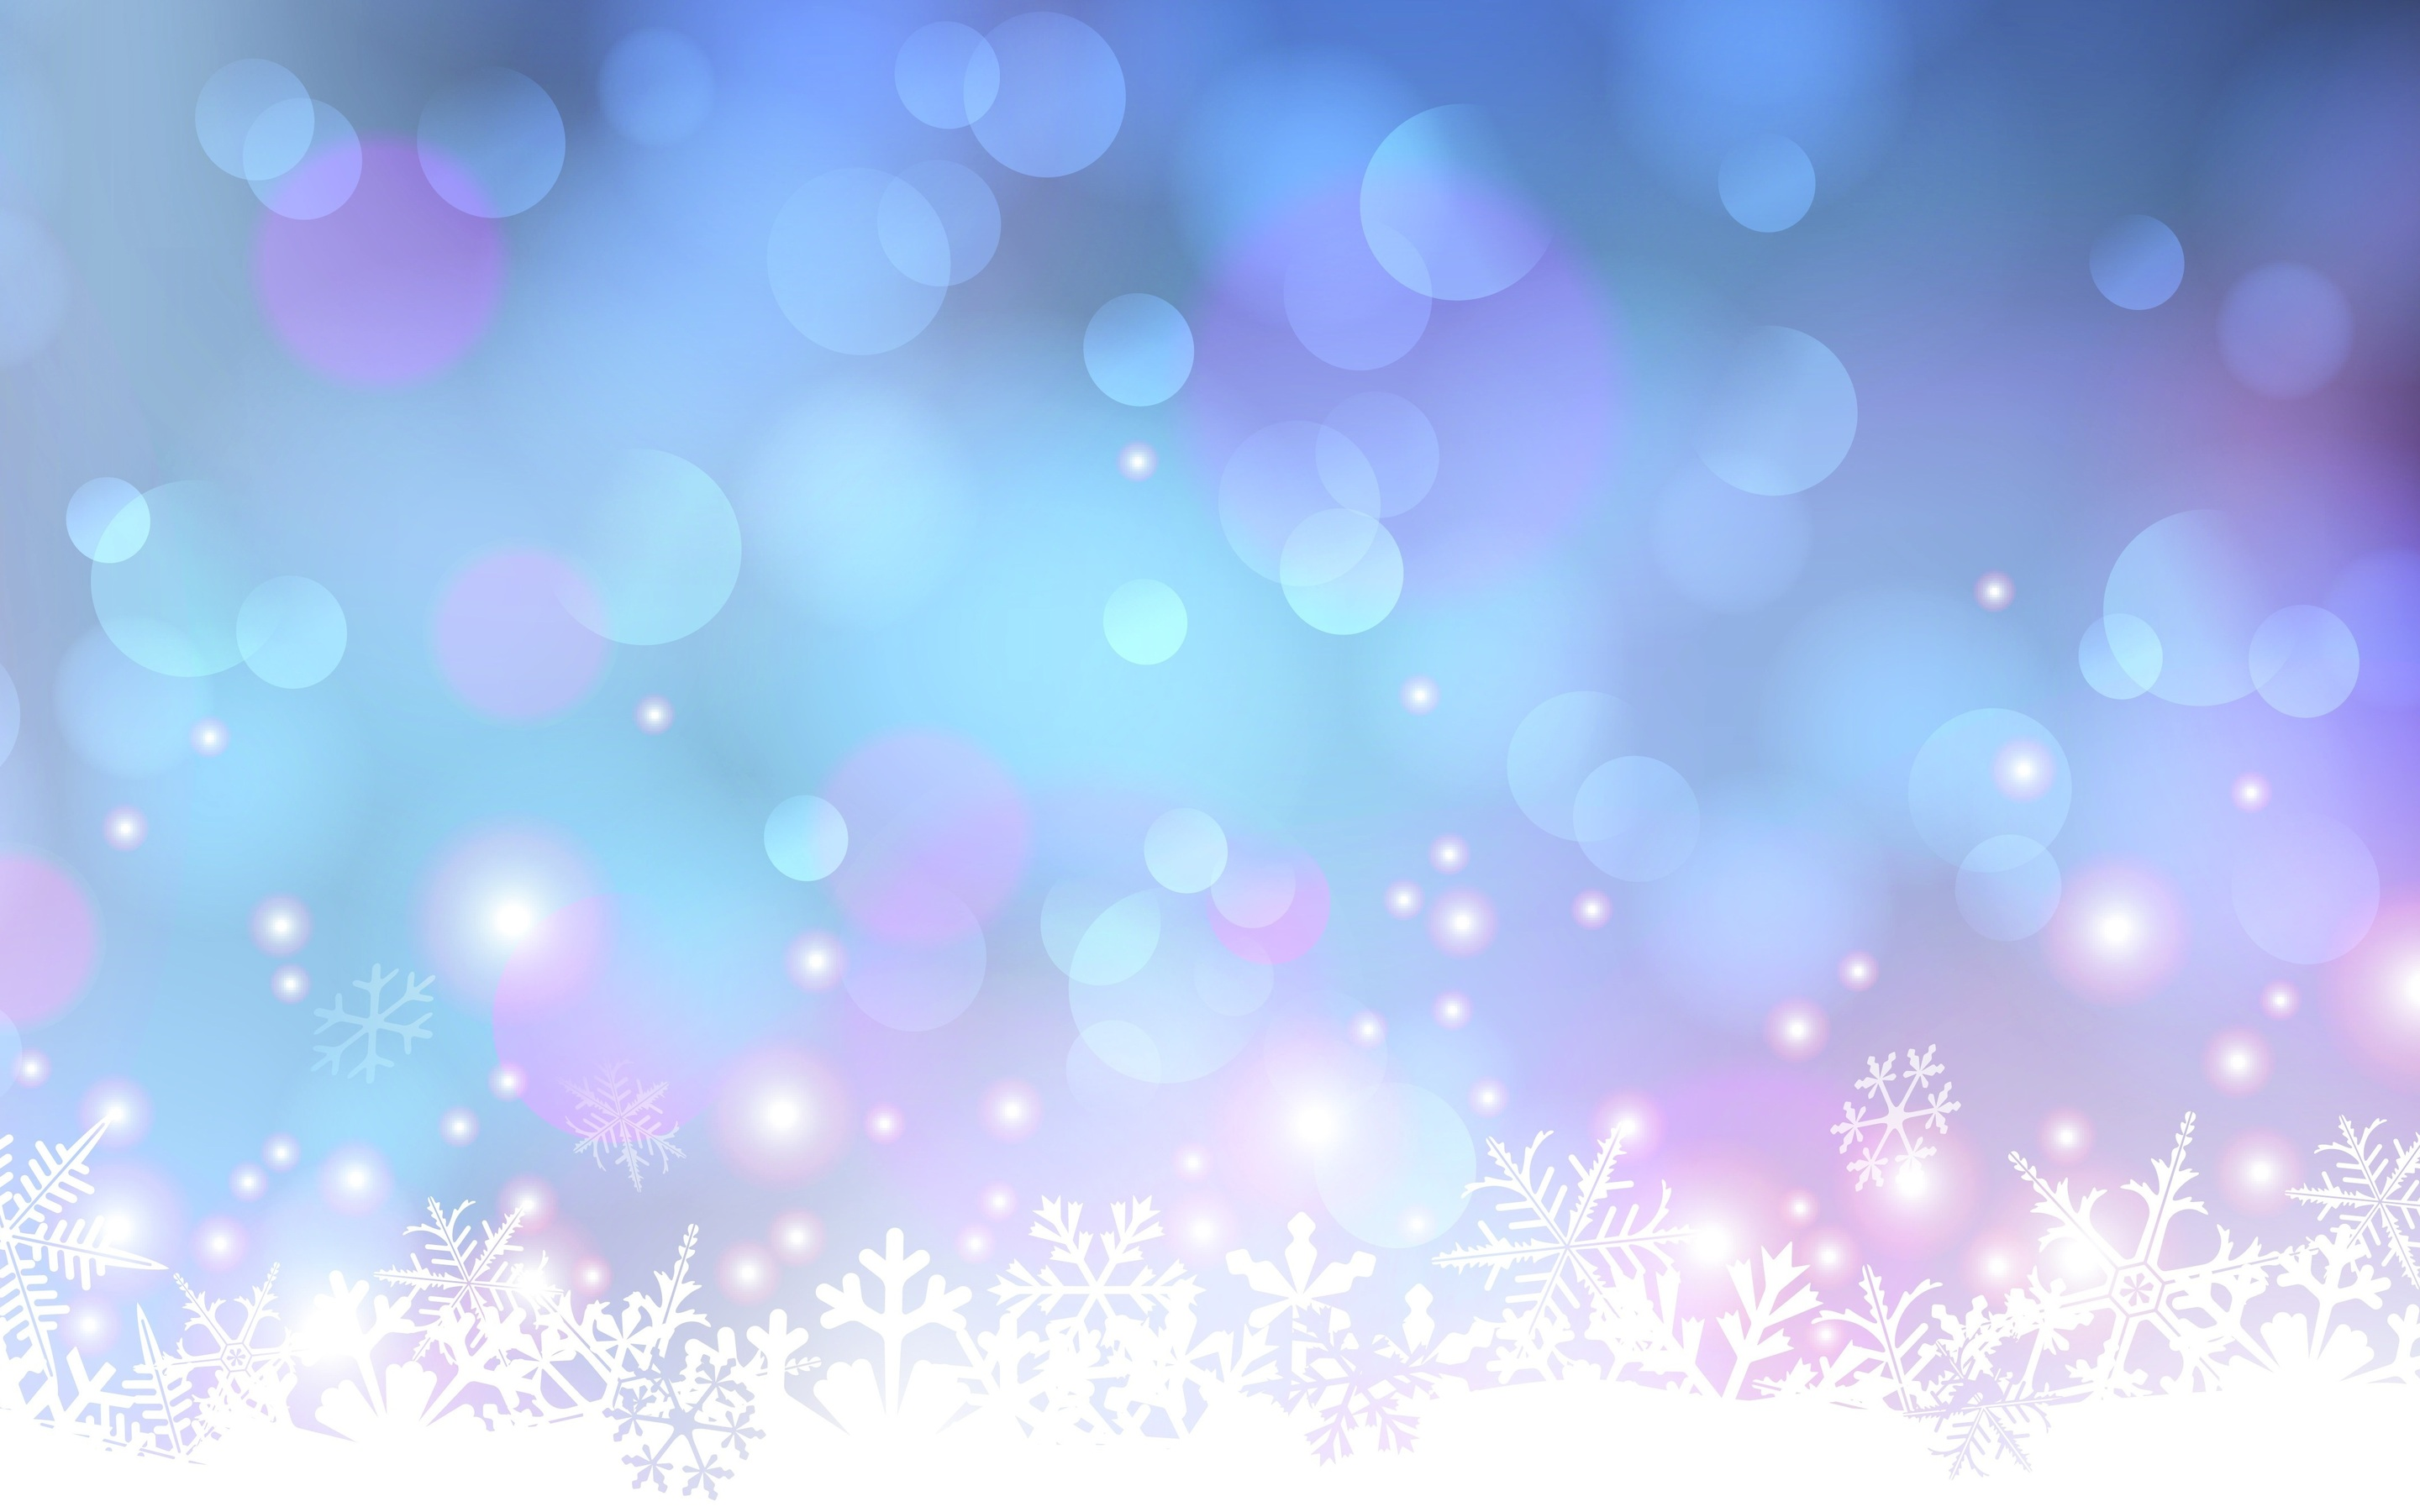 Desktop wallpapers holiday free - Holiday Hd Wallpaper Holiday Backgrounds Cool Wallpapers